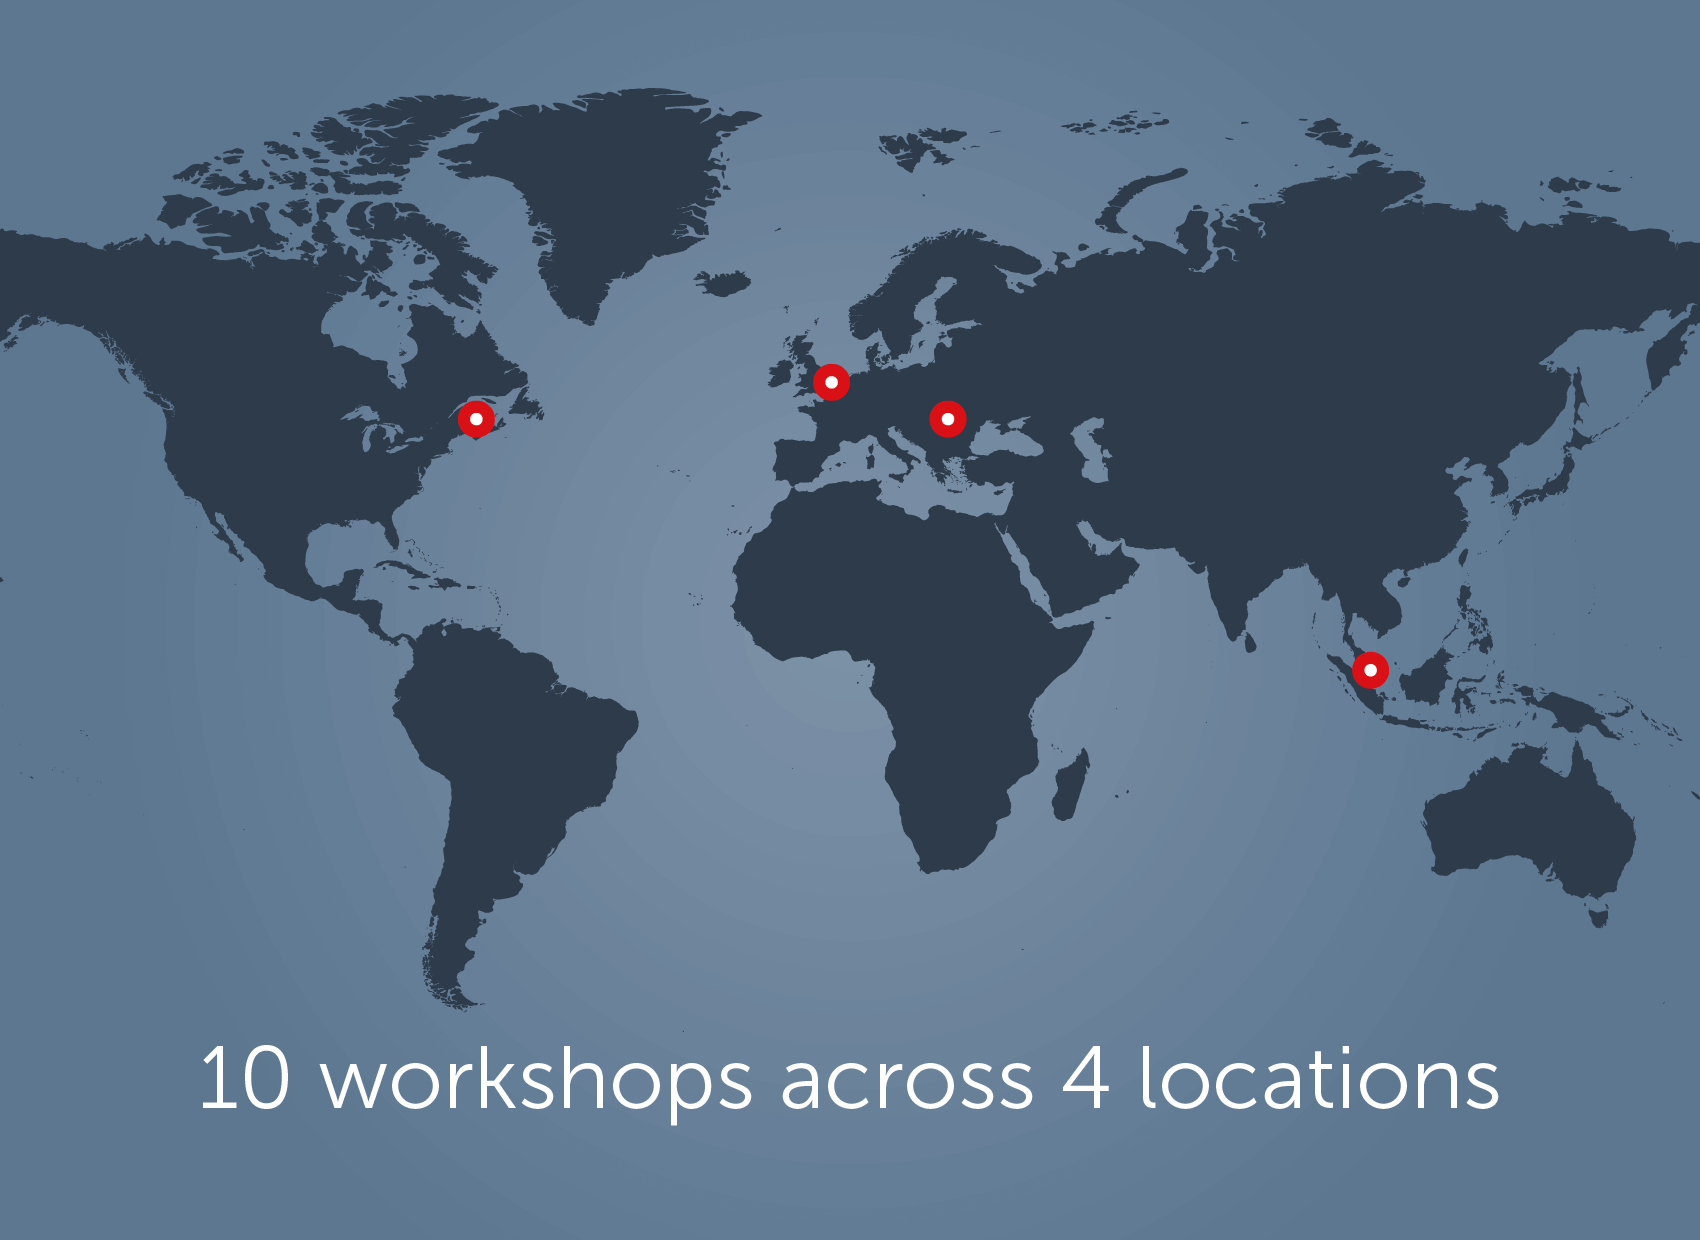 Aptitude brand workshop locations